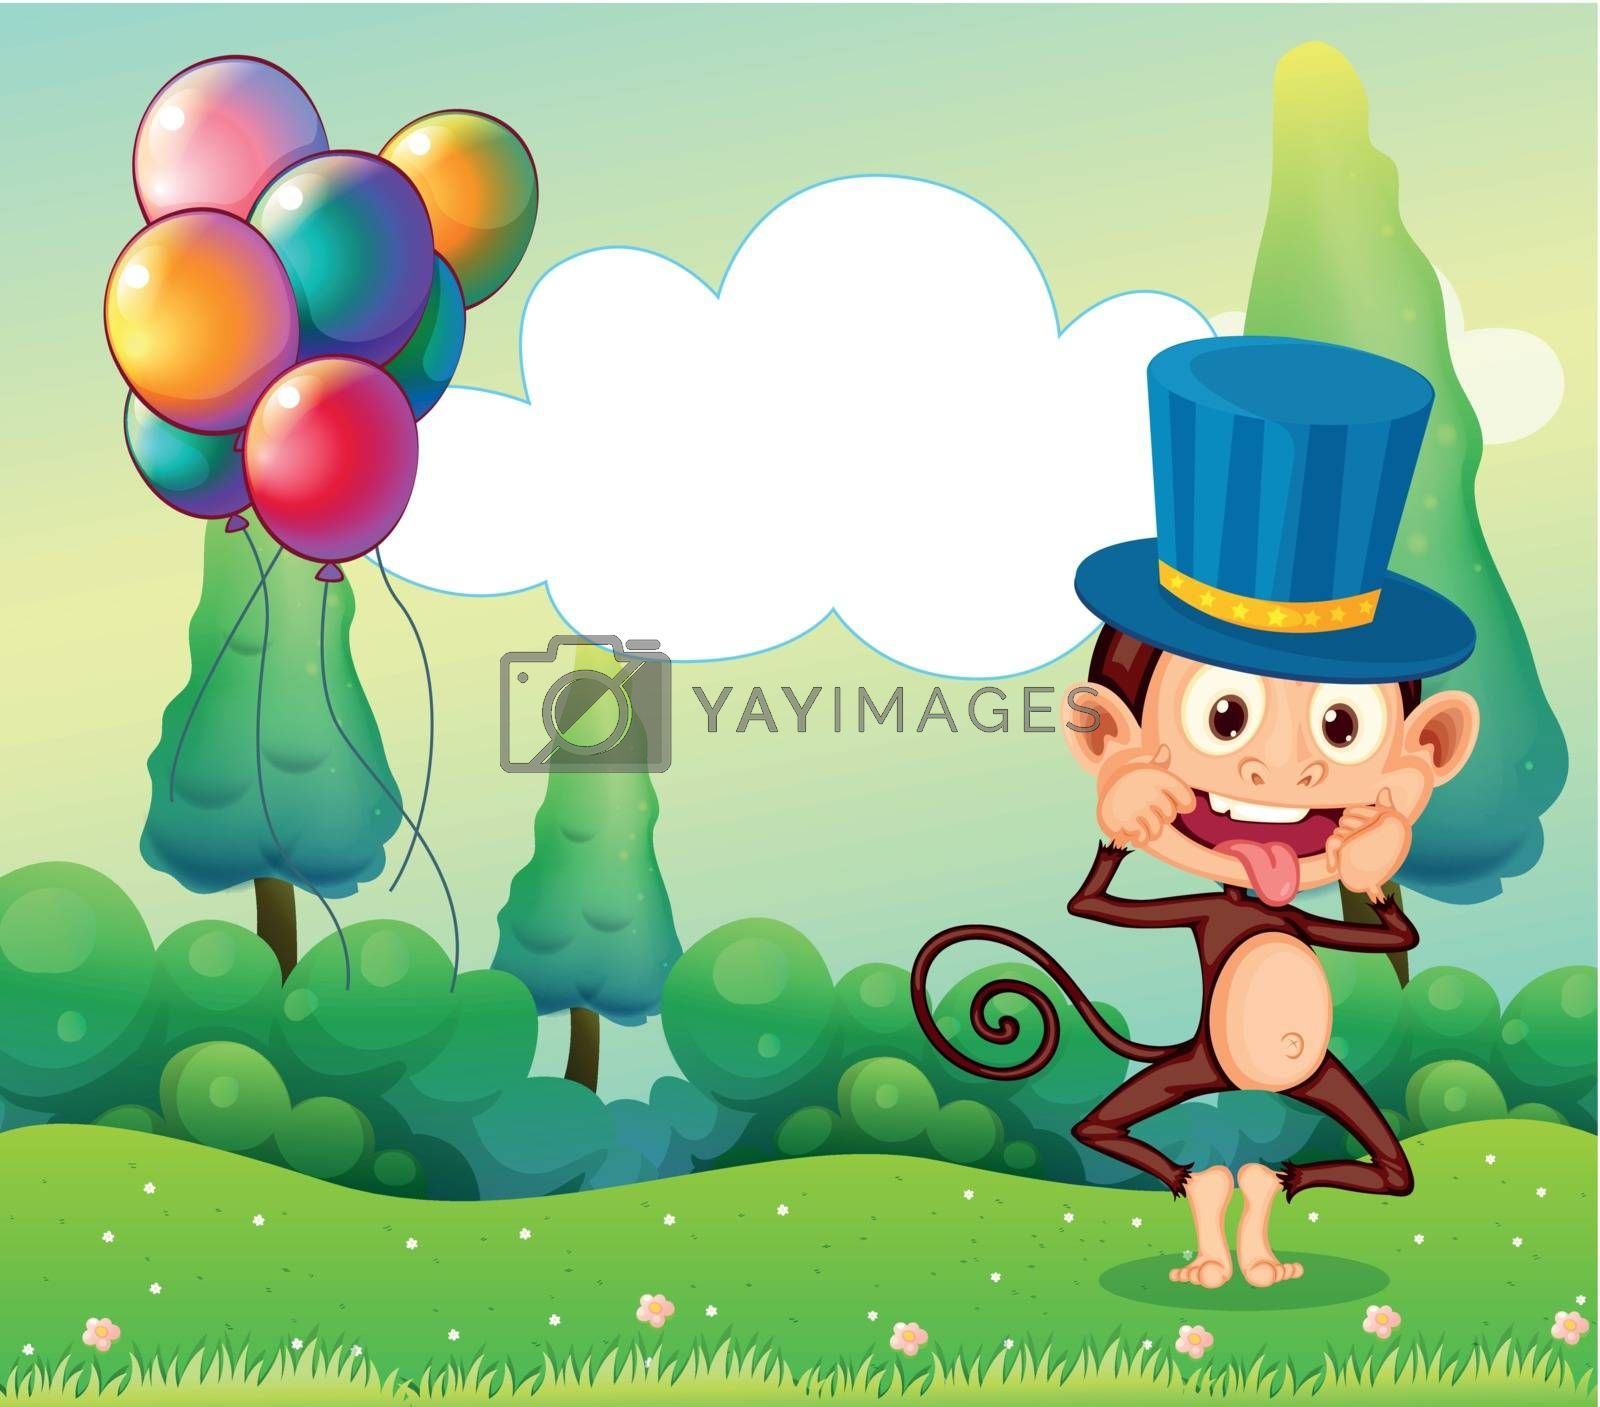 Illustration of a monkey with balloons in the hilltop